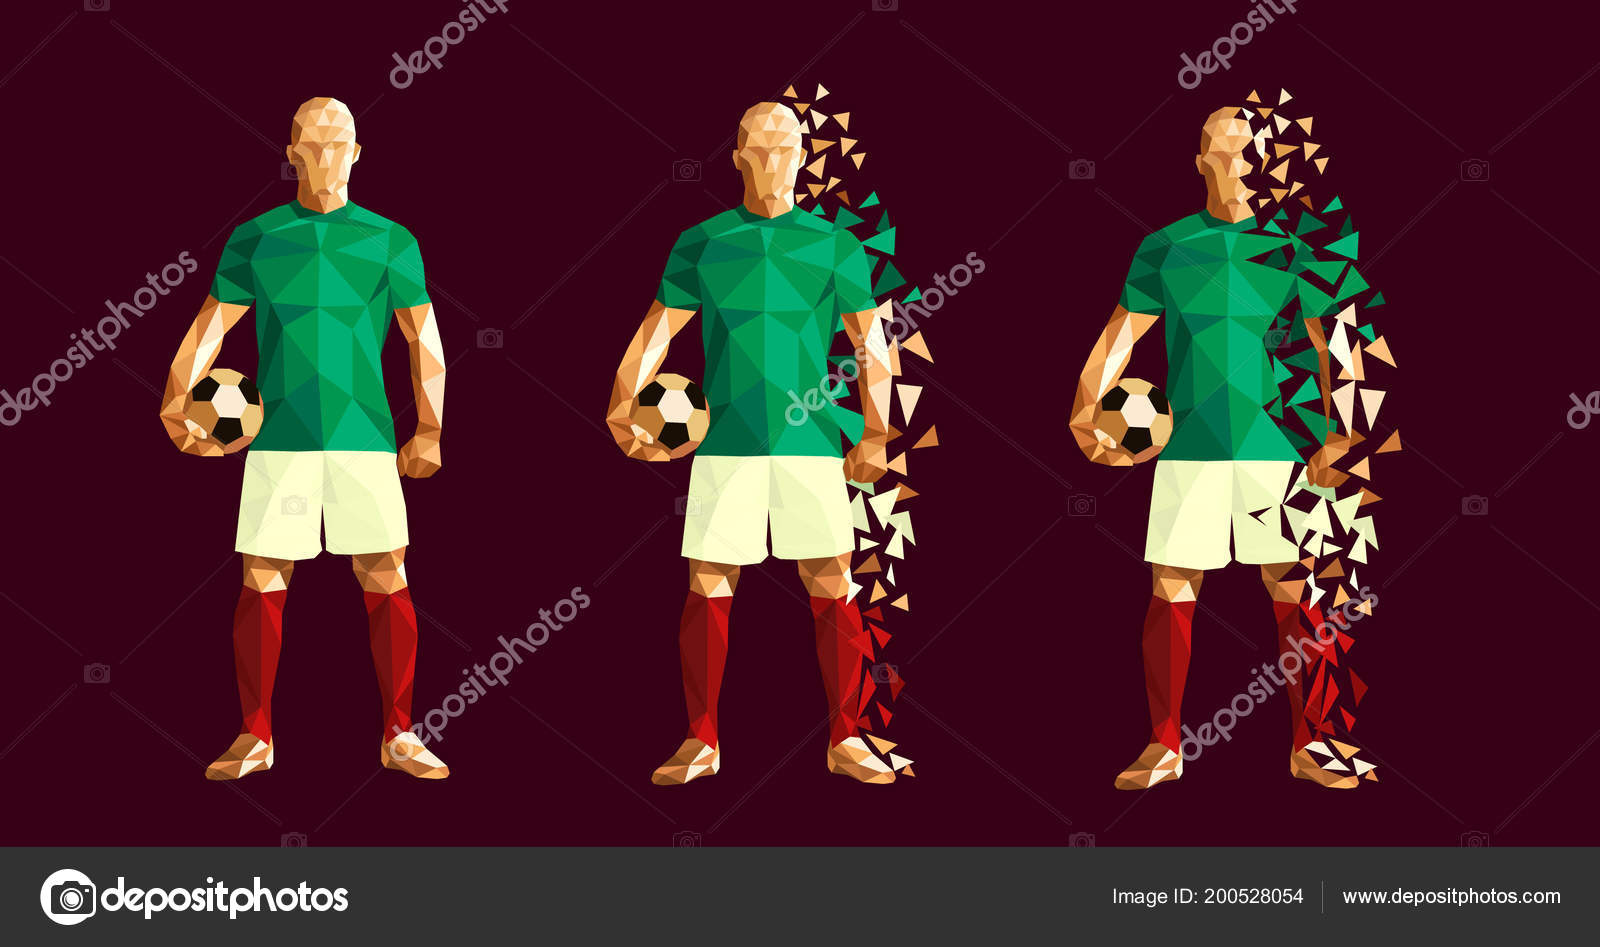 08b61669ca2 Vector illustration soccer football player low-poly style concept mexico  kits uniform colour world cup 2018 russia championship — Vector by ...